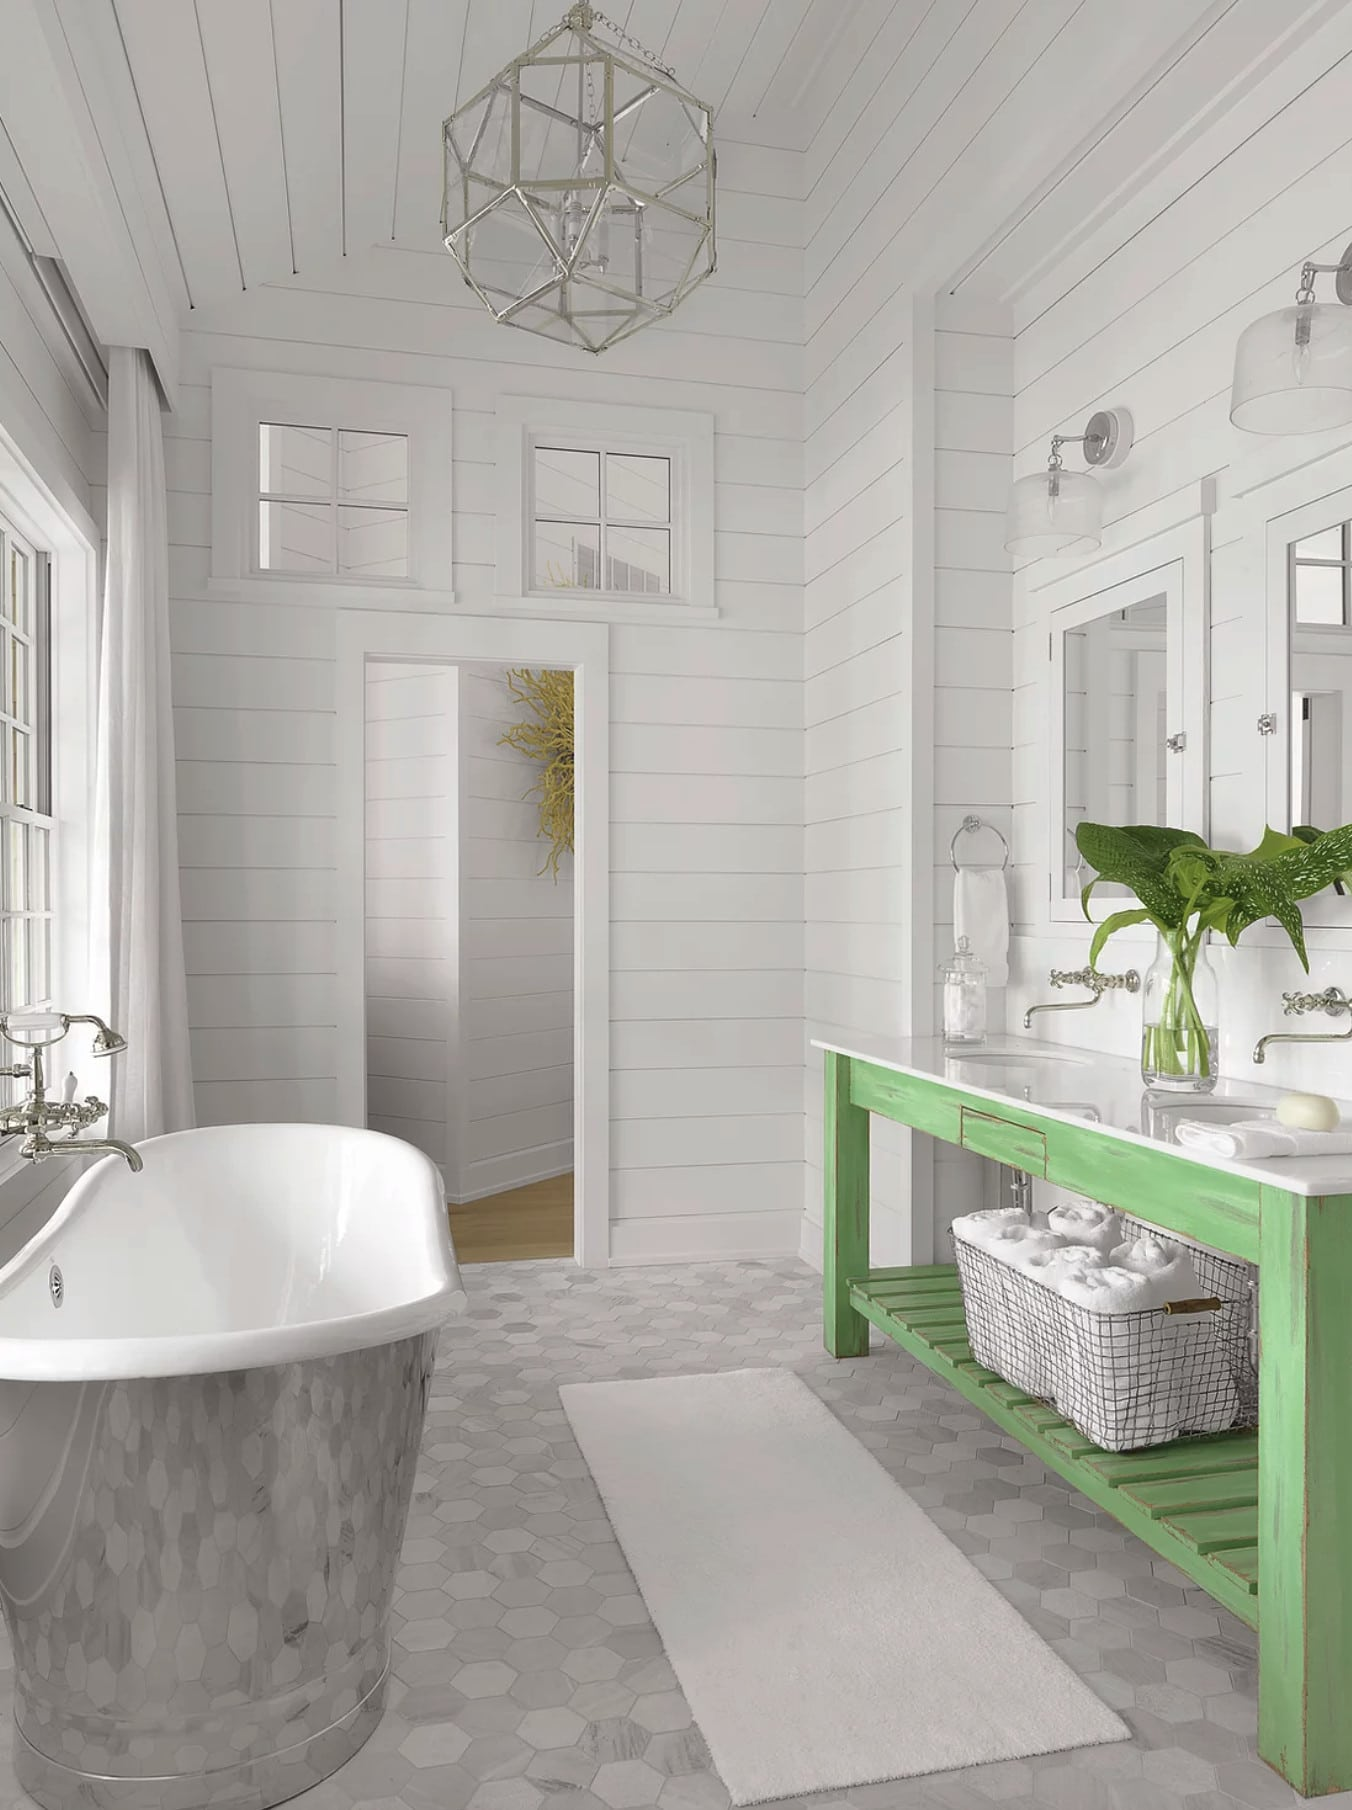 Nantucket house tour by Amy Studebaker Interior Design - Alise O'Brien Photography bathroom with freestanding stainless tub